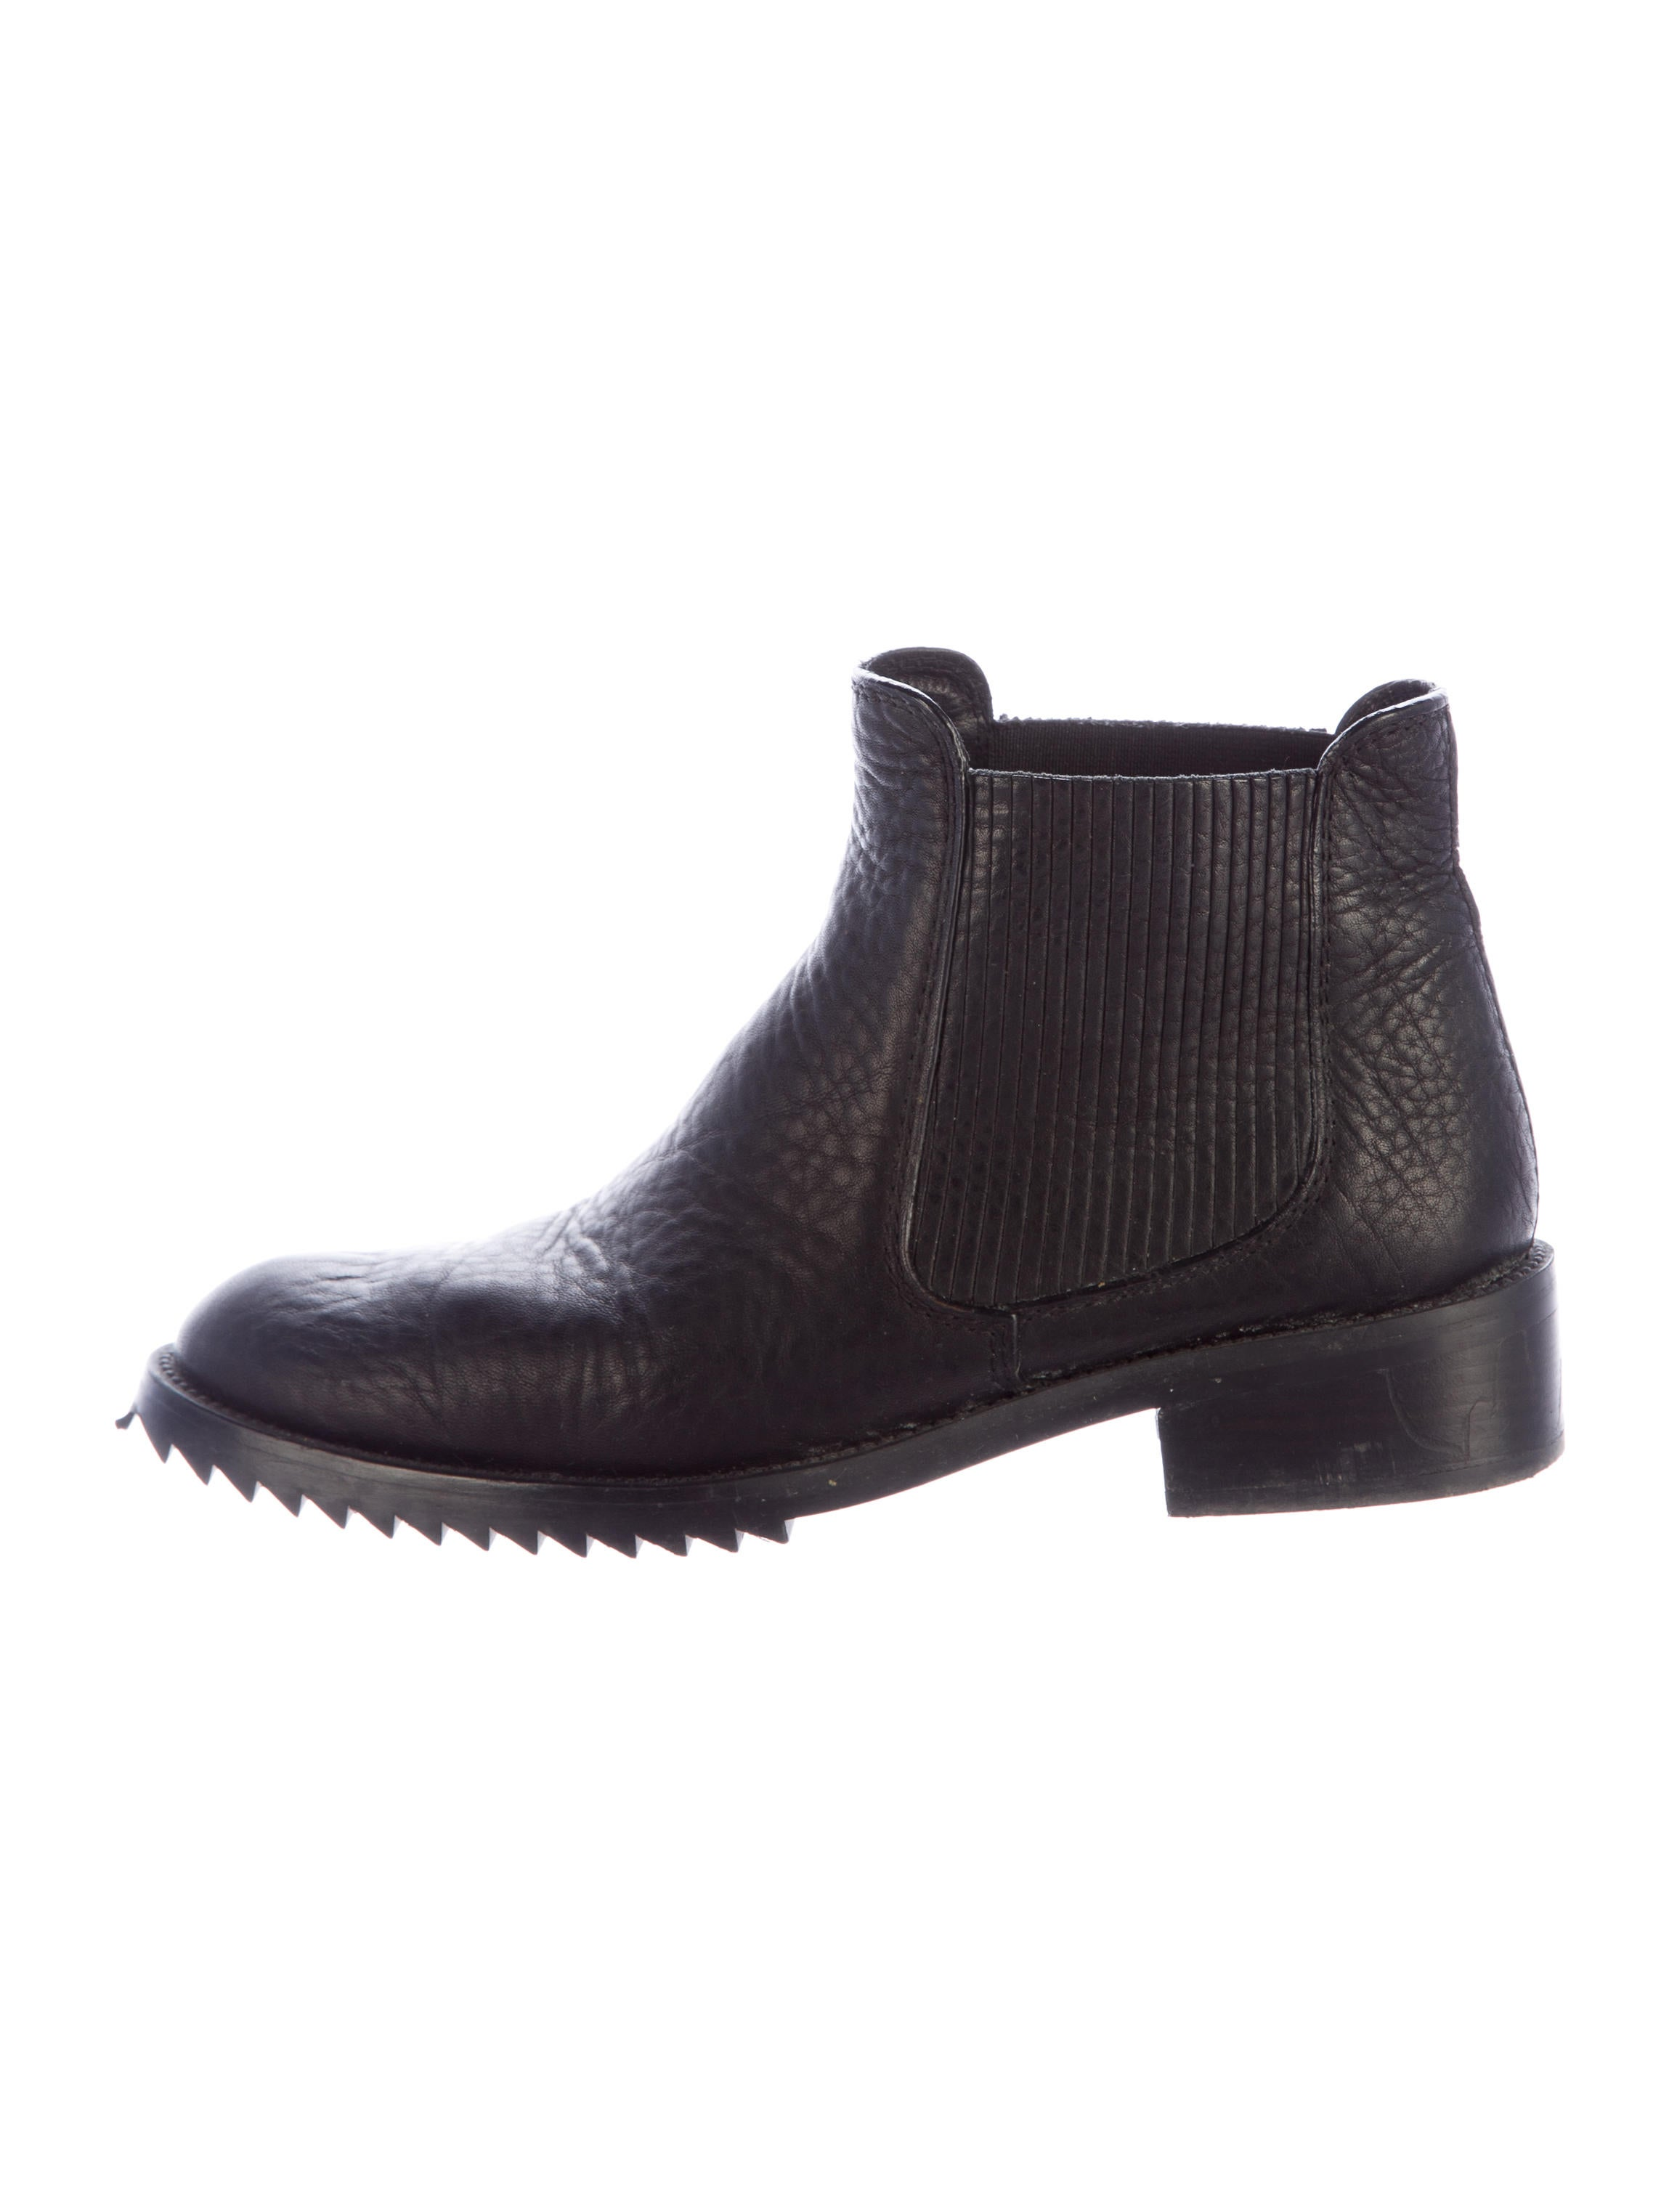 pedro garcia leather ankle boots shoes ped23575 the